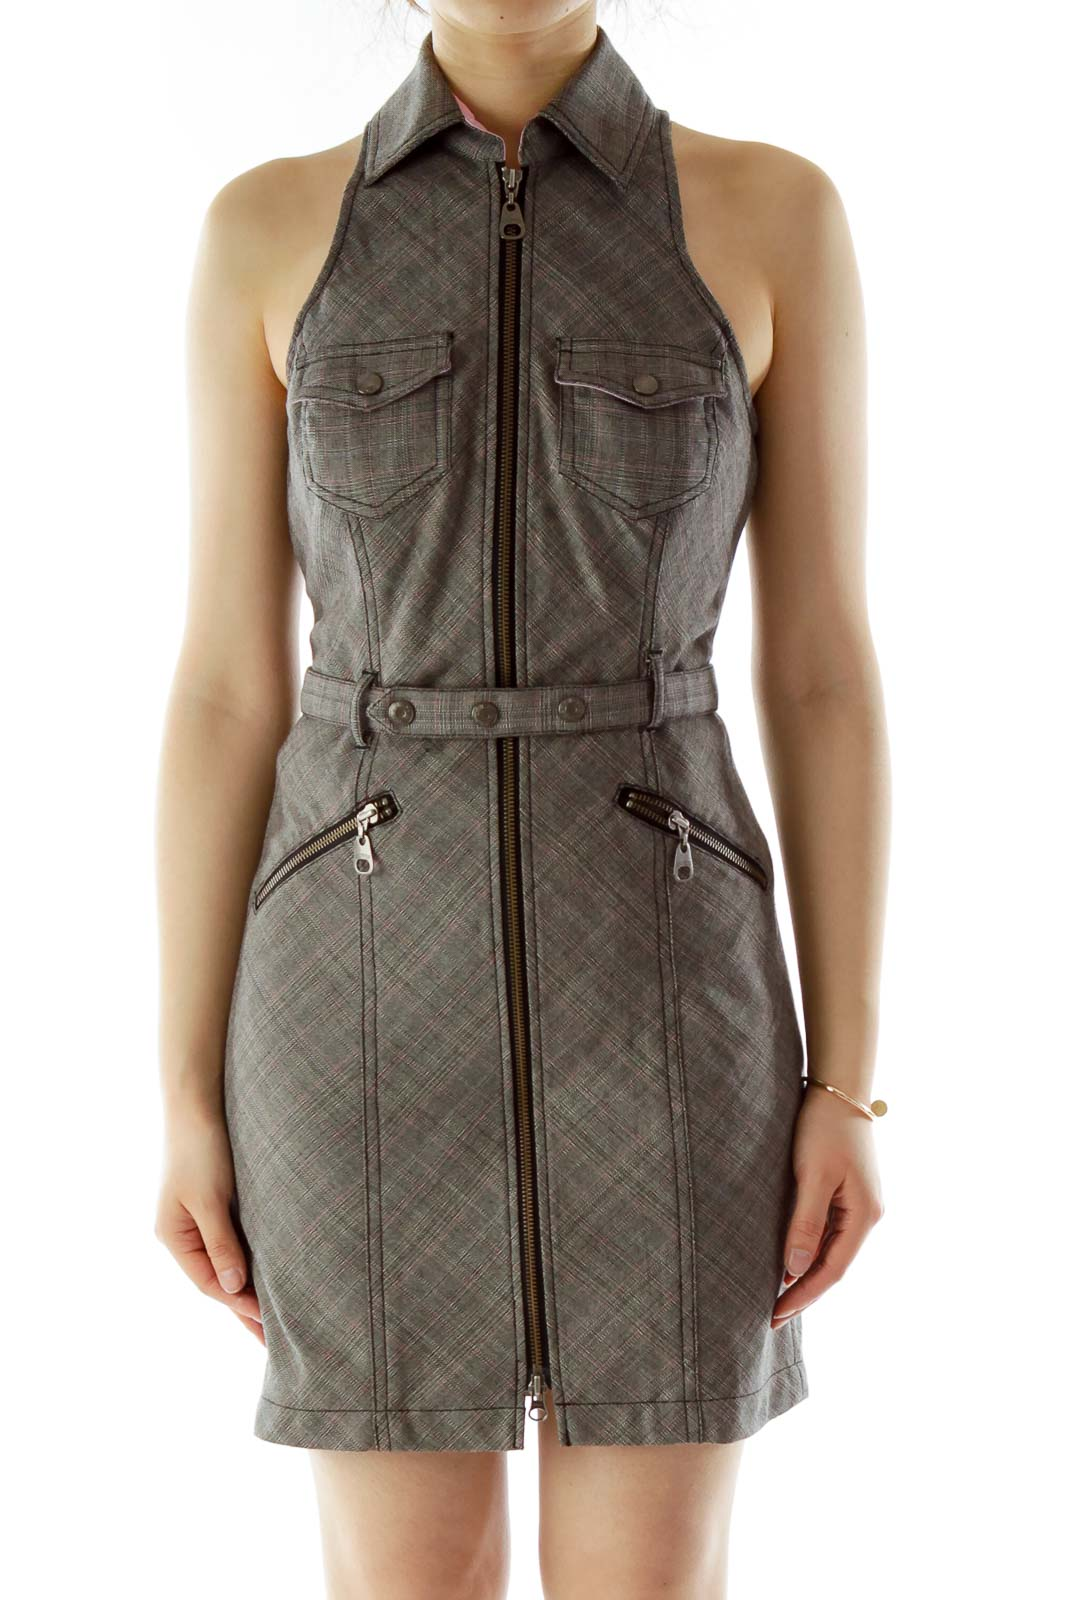 Gray Belted Zippered Work Dress